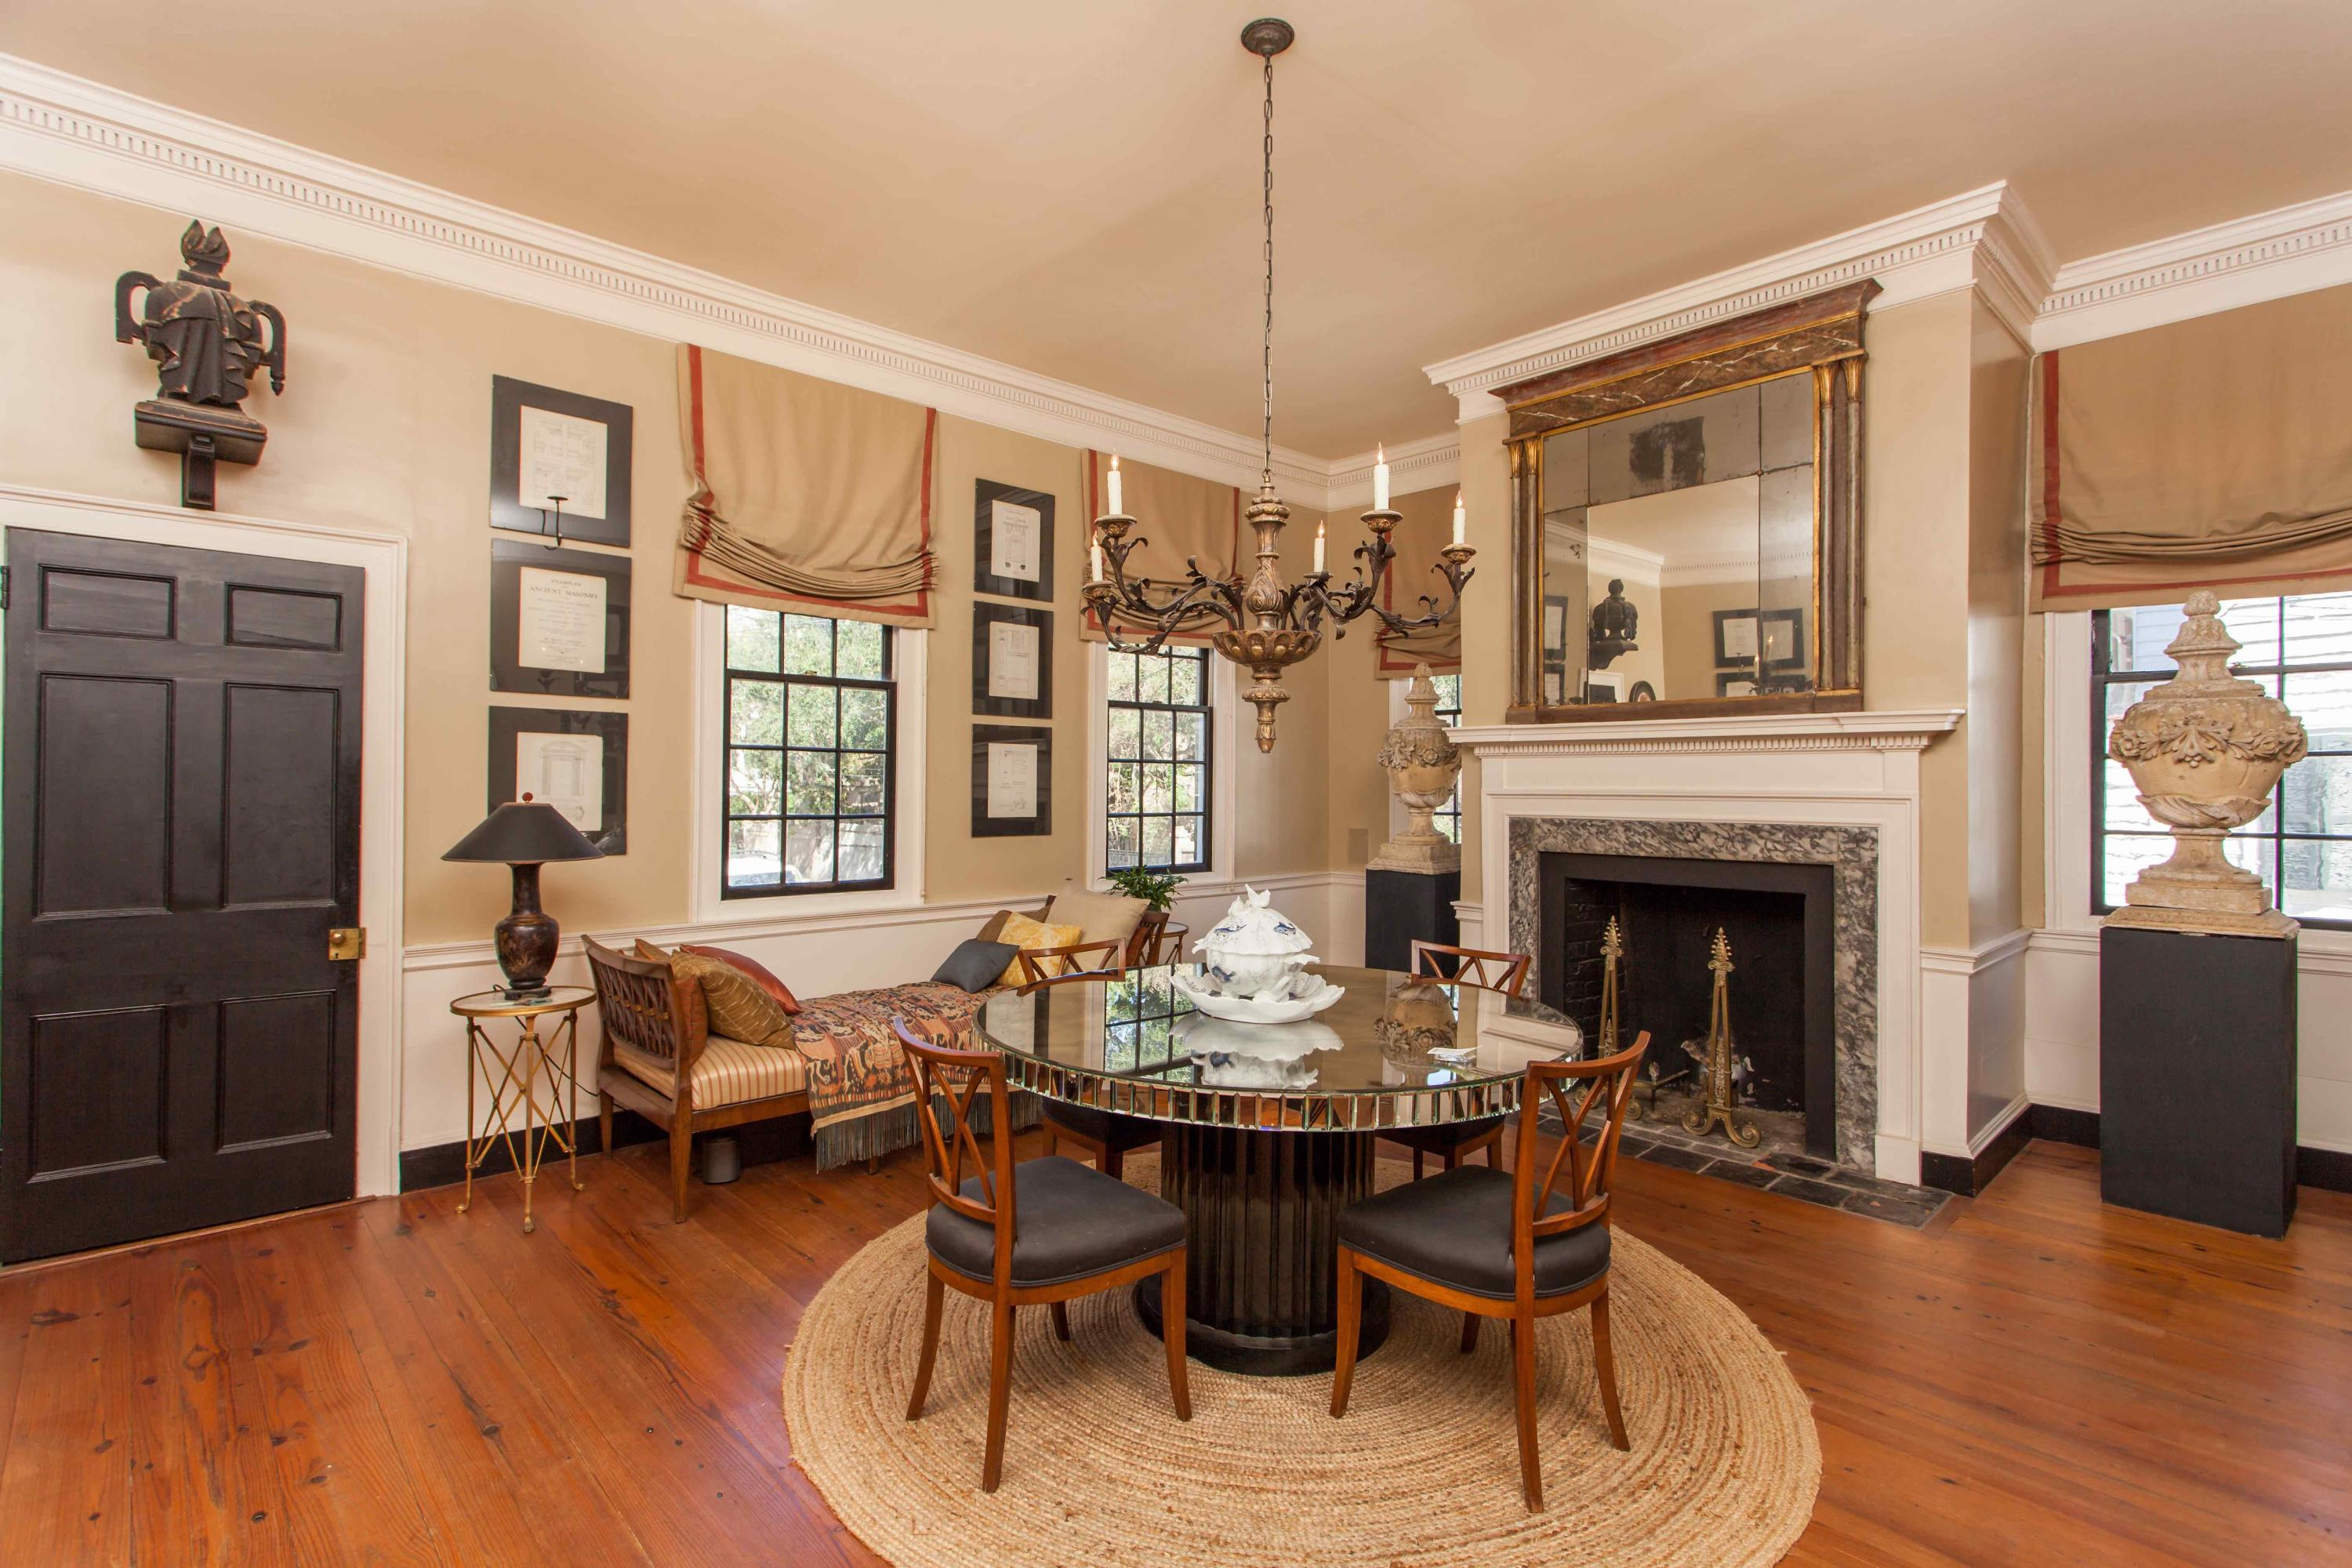 South of Broad Homes For Sale - 58 South Battery, Charleston, SC - 46